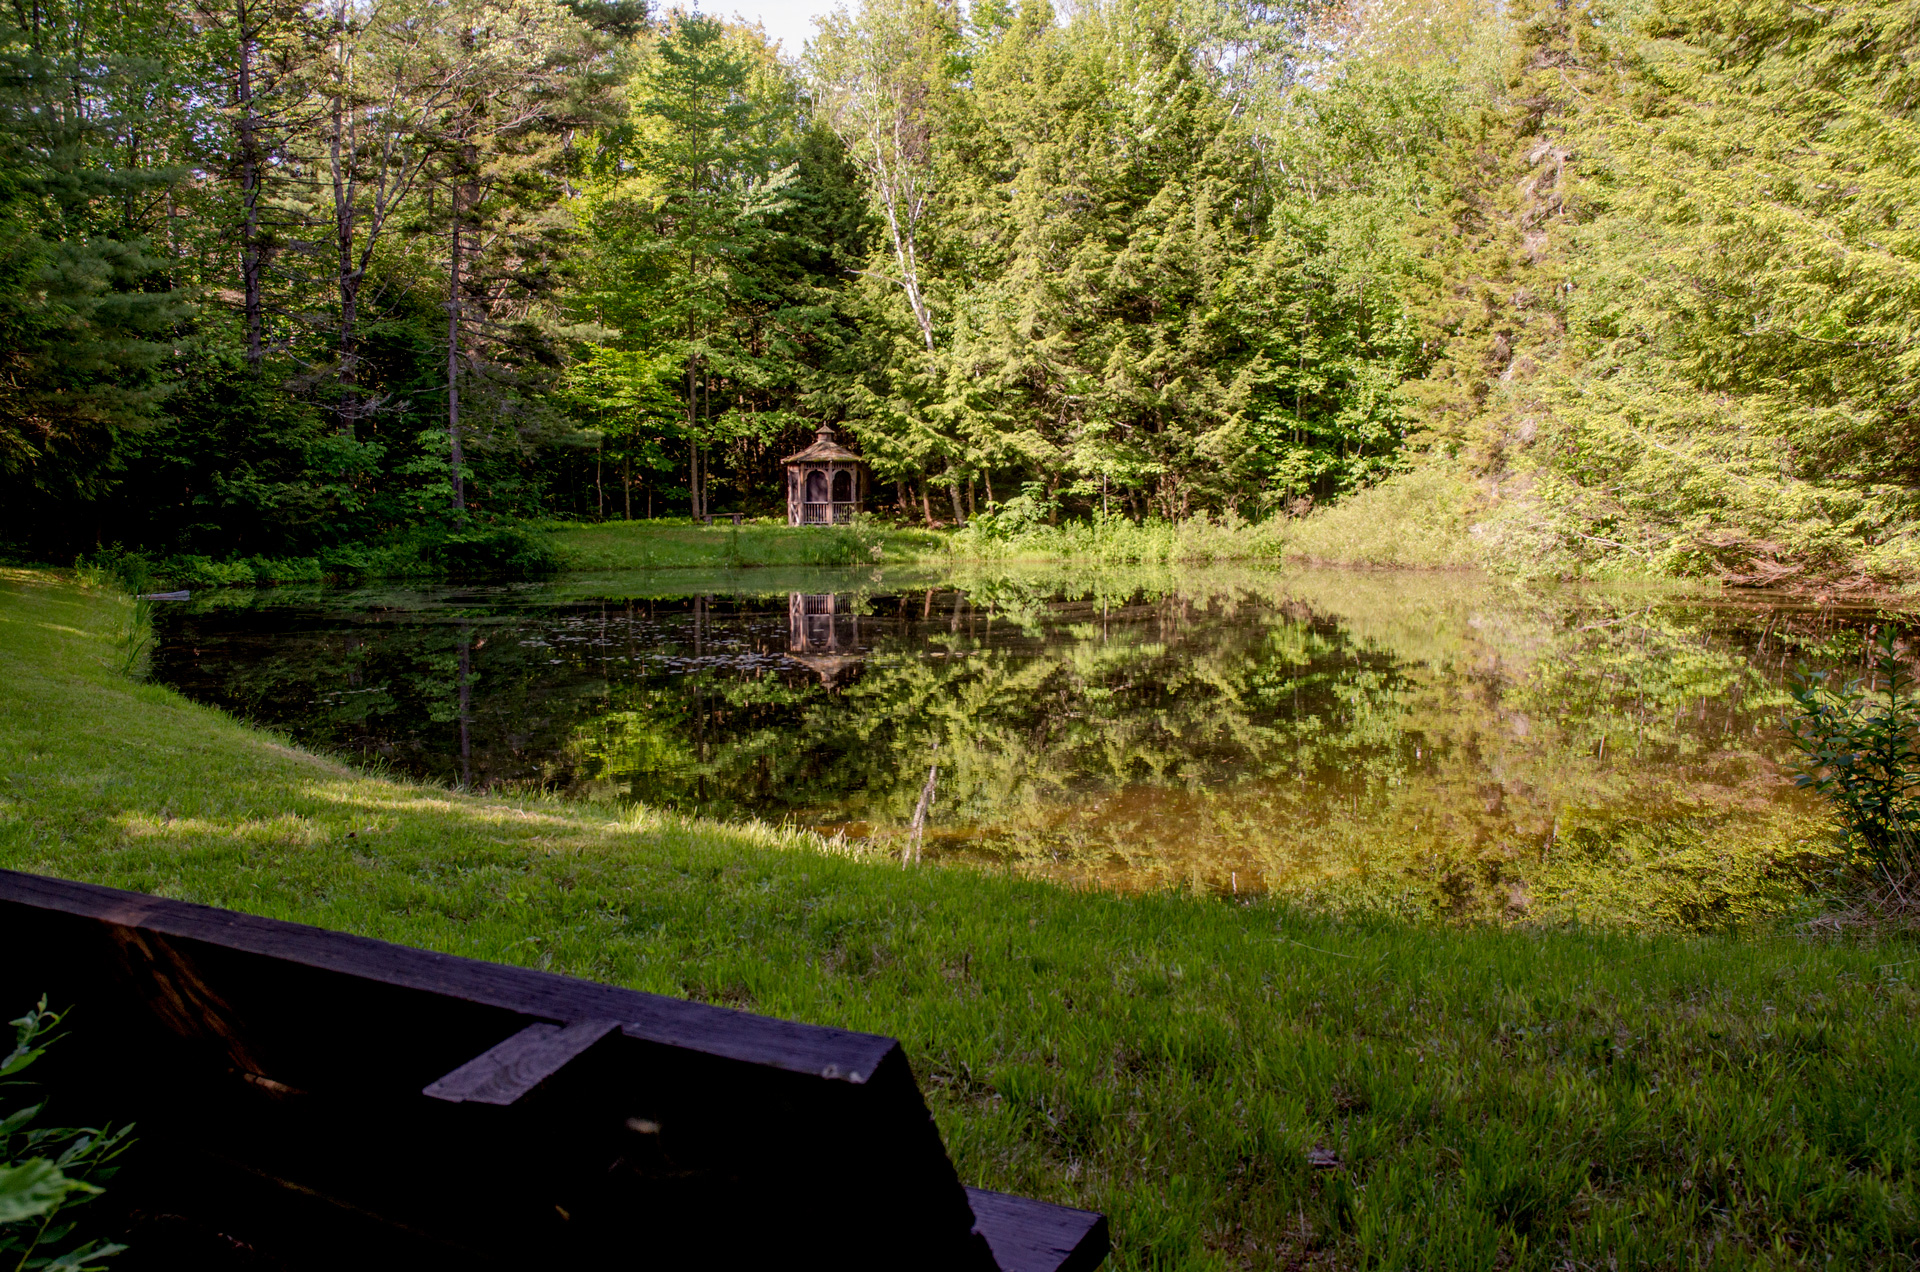 The 3/4 acre Pond with a Gazebo on the far shore.